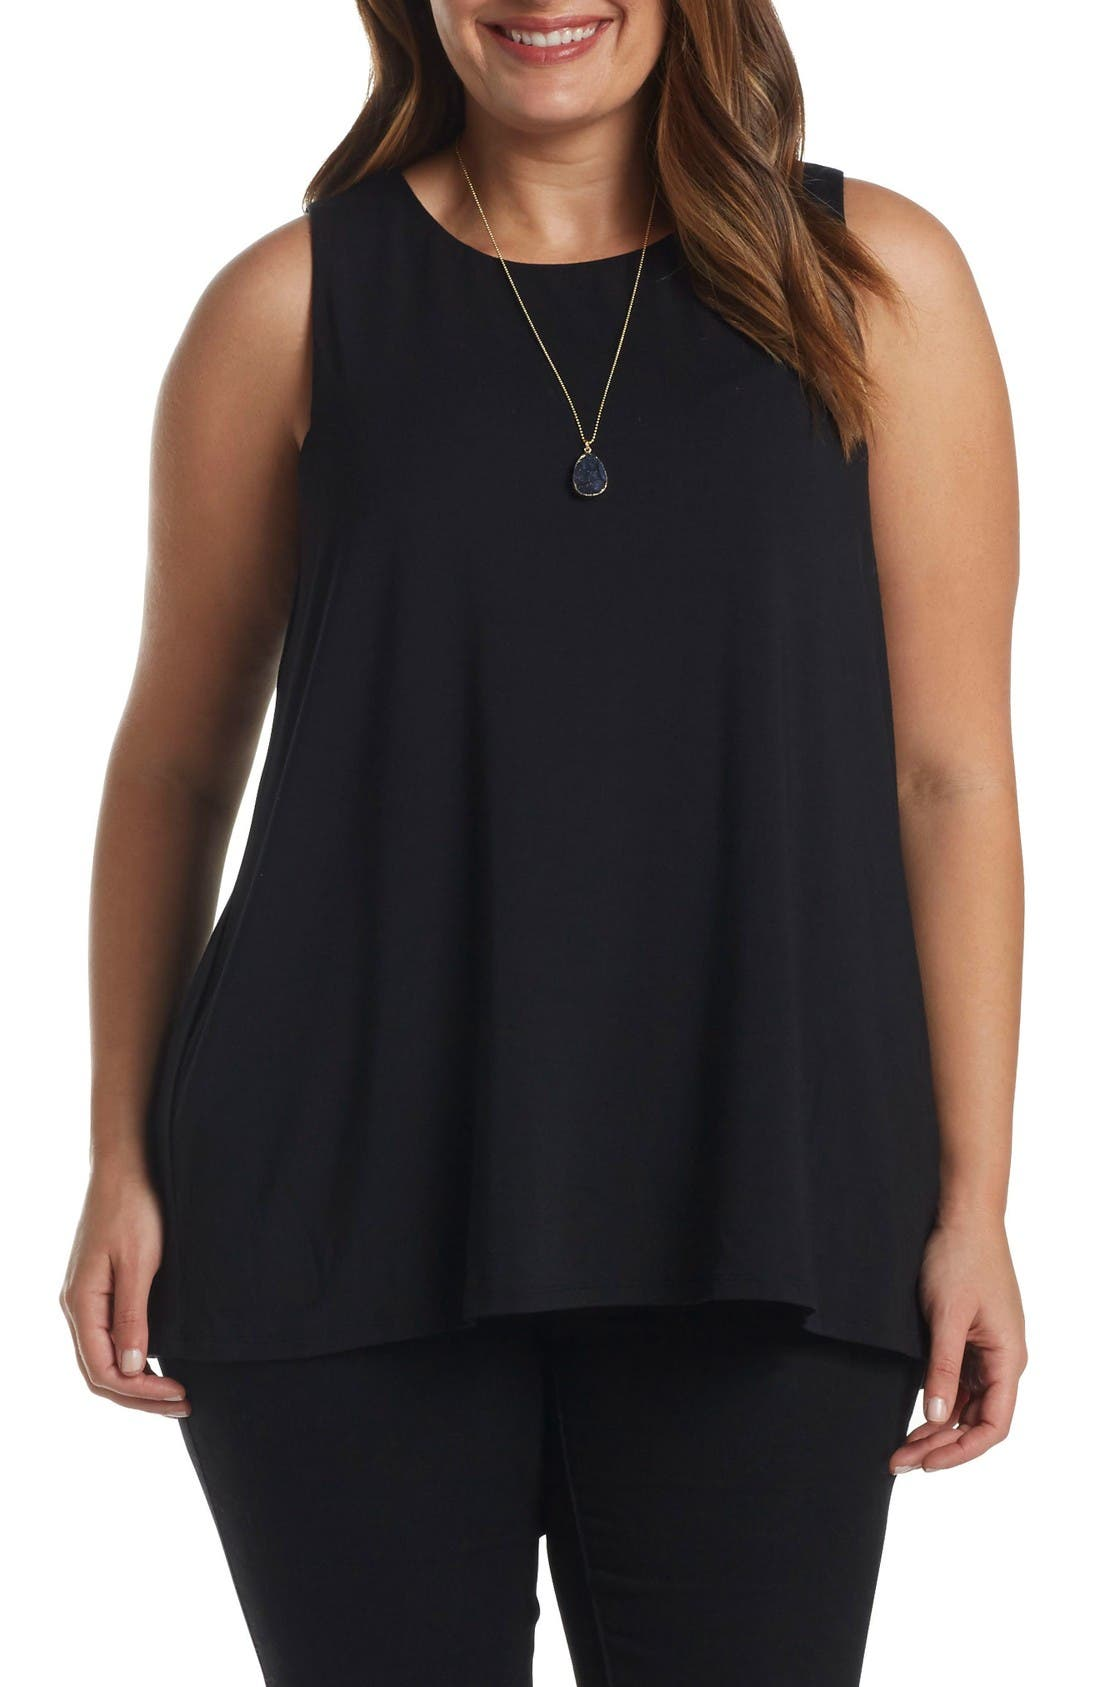 Maxie Top in Black